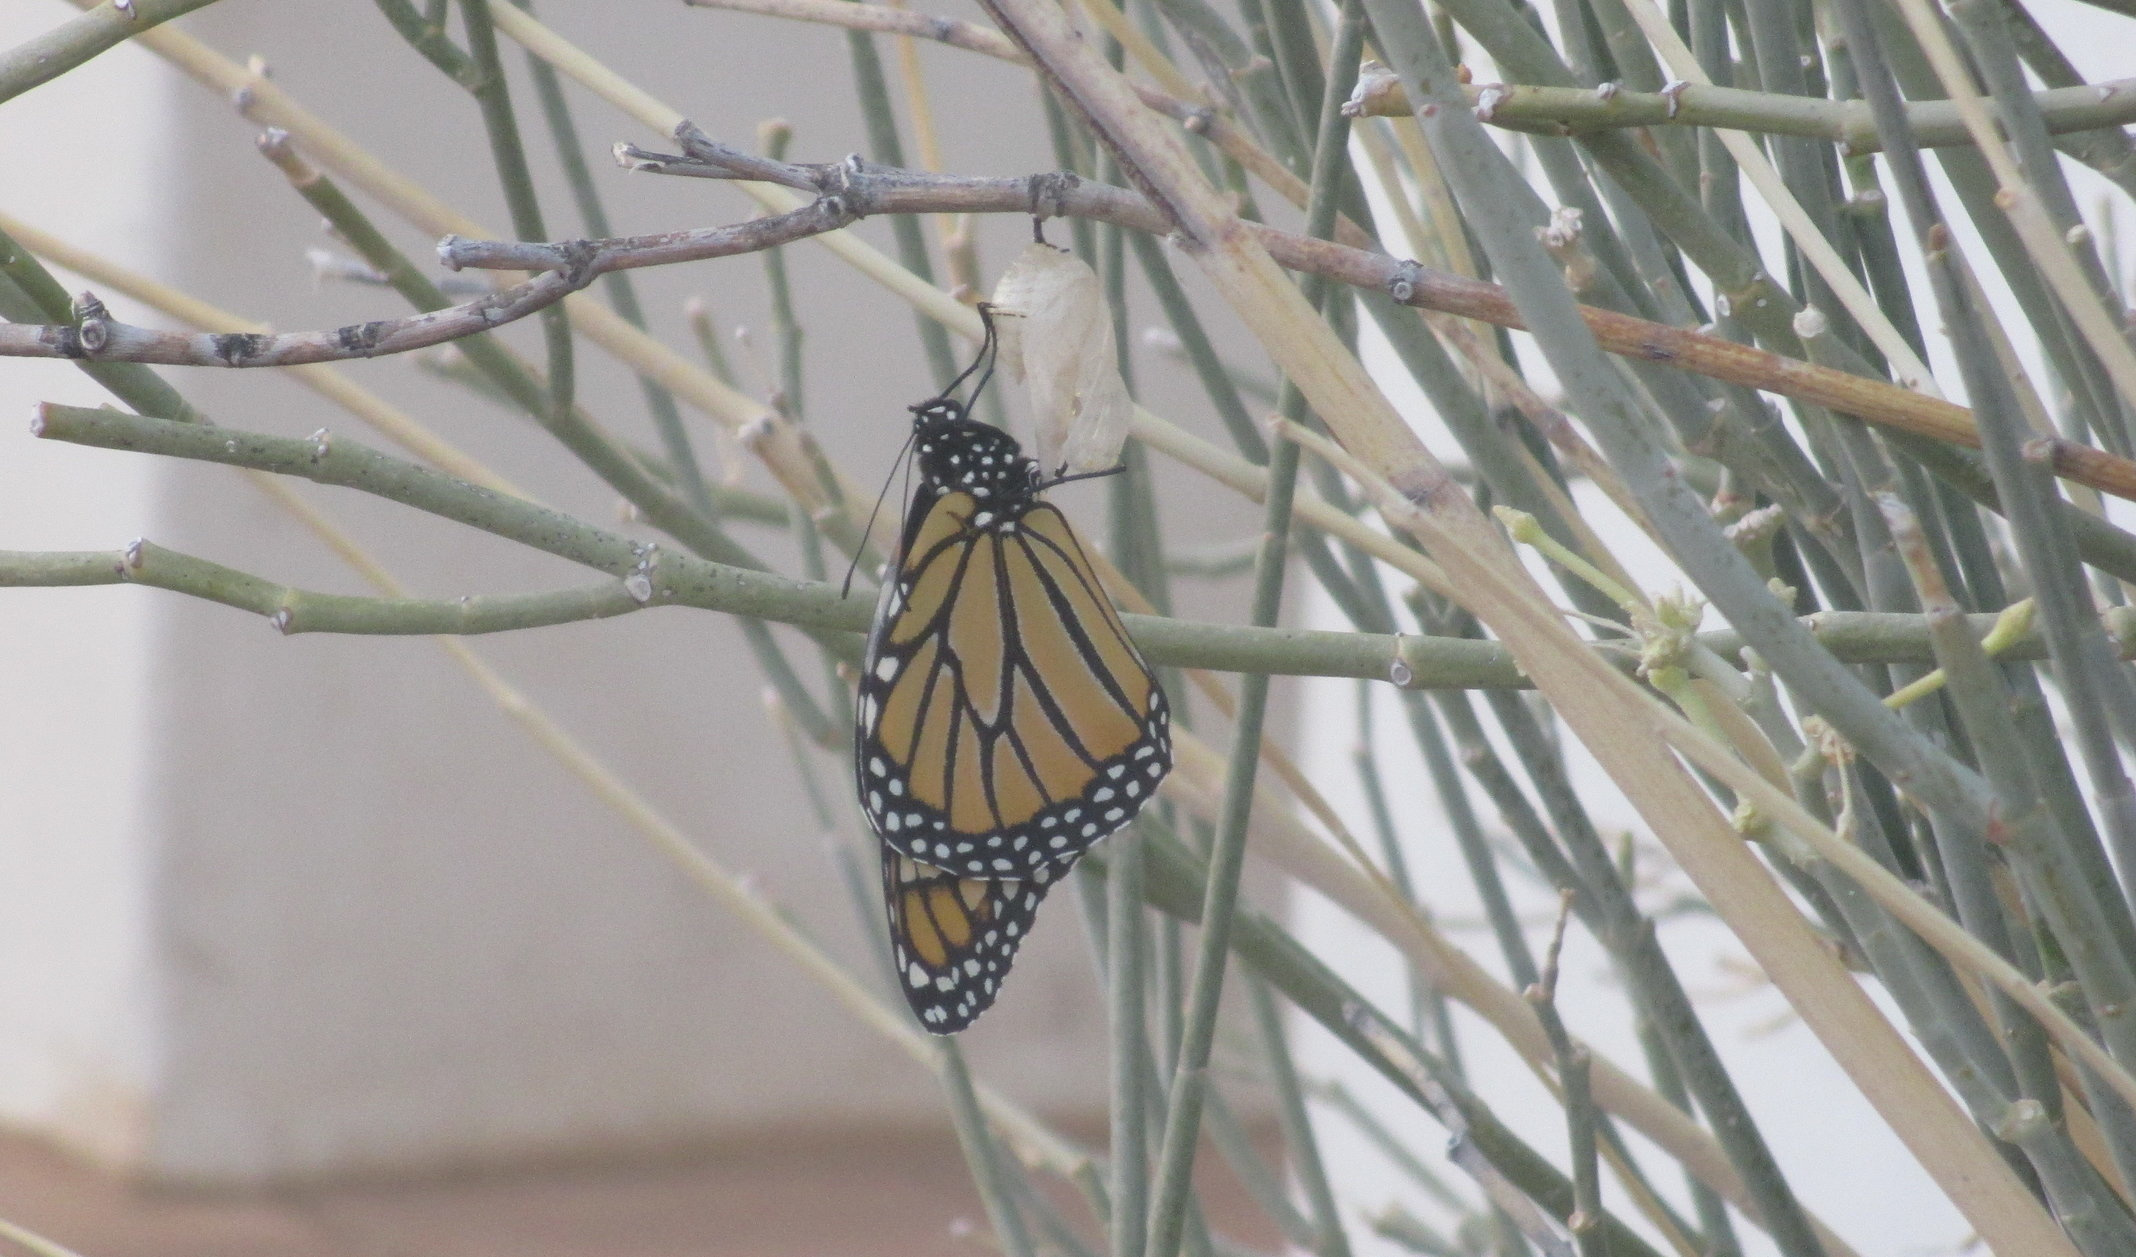 Monarch butterfly emerging from chrysalis on a Desert Milkweed plant